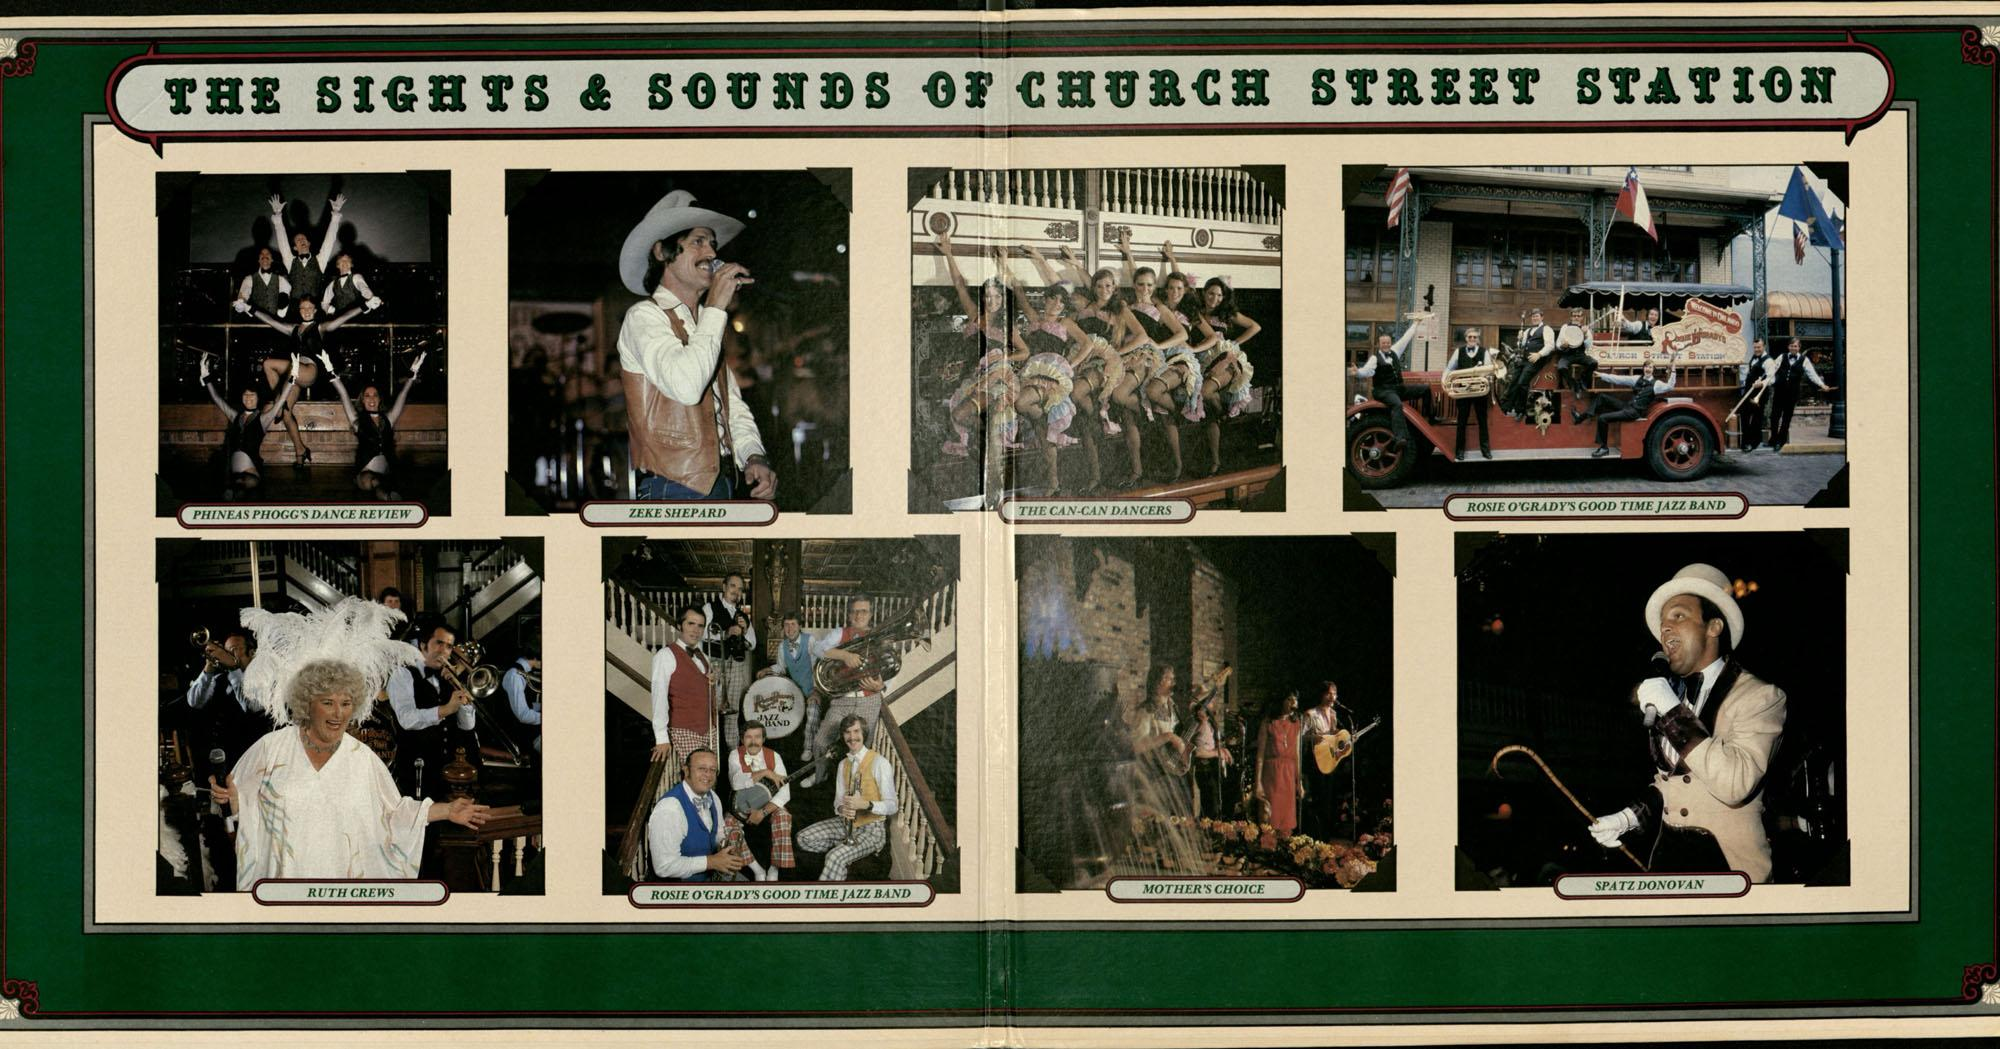 Sights and Sounds of Church Street Station fold out album cover